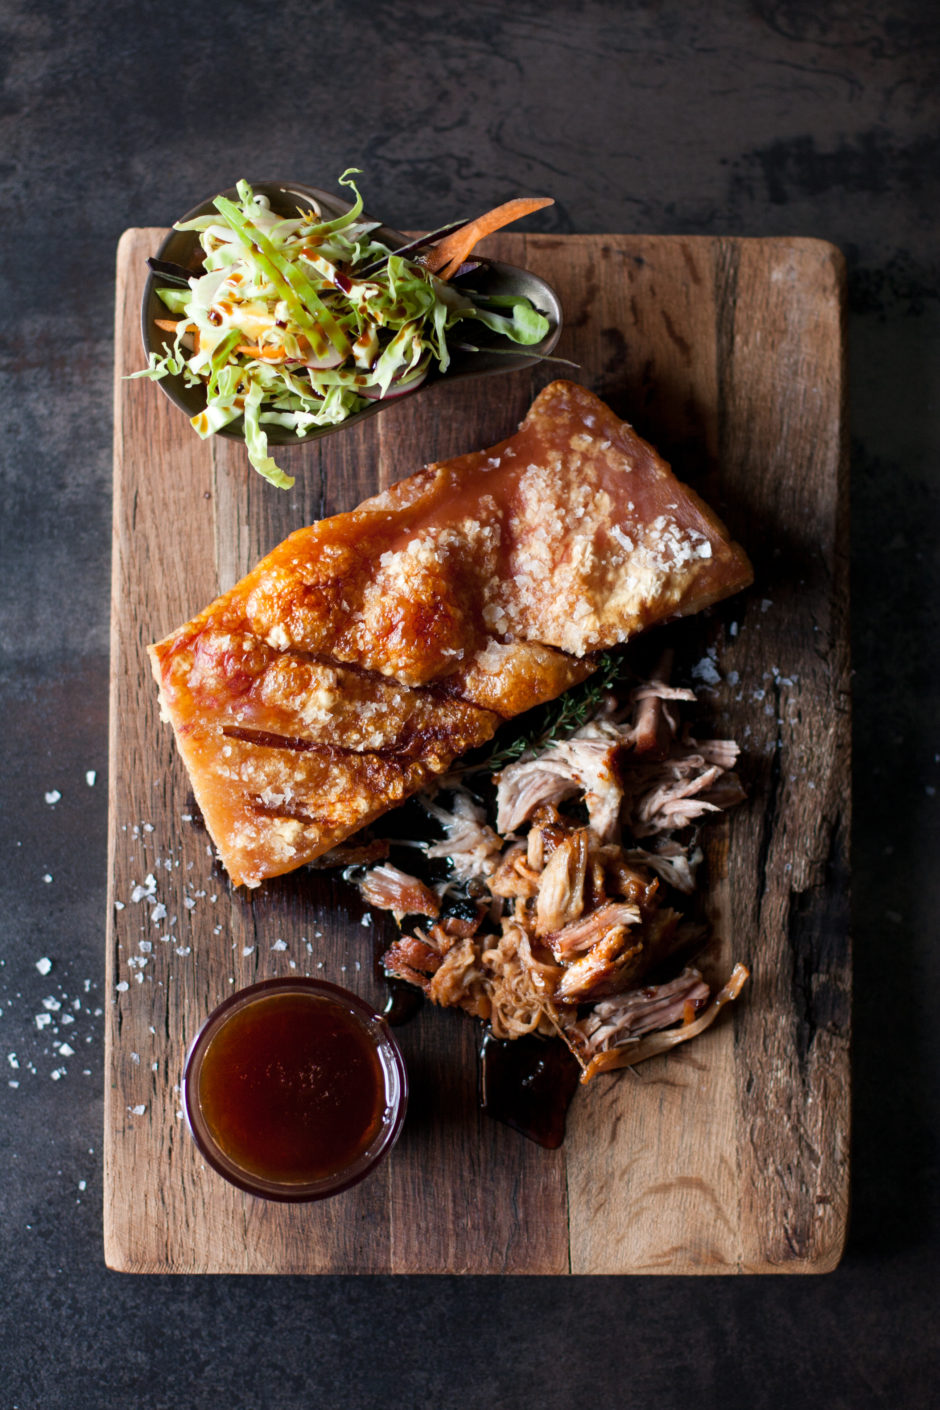 Pulled Pork with Sticky Plum Sauce